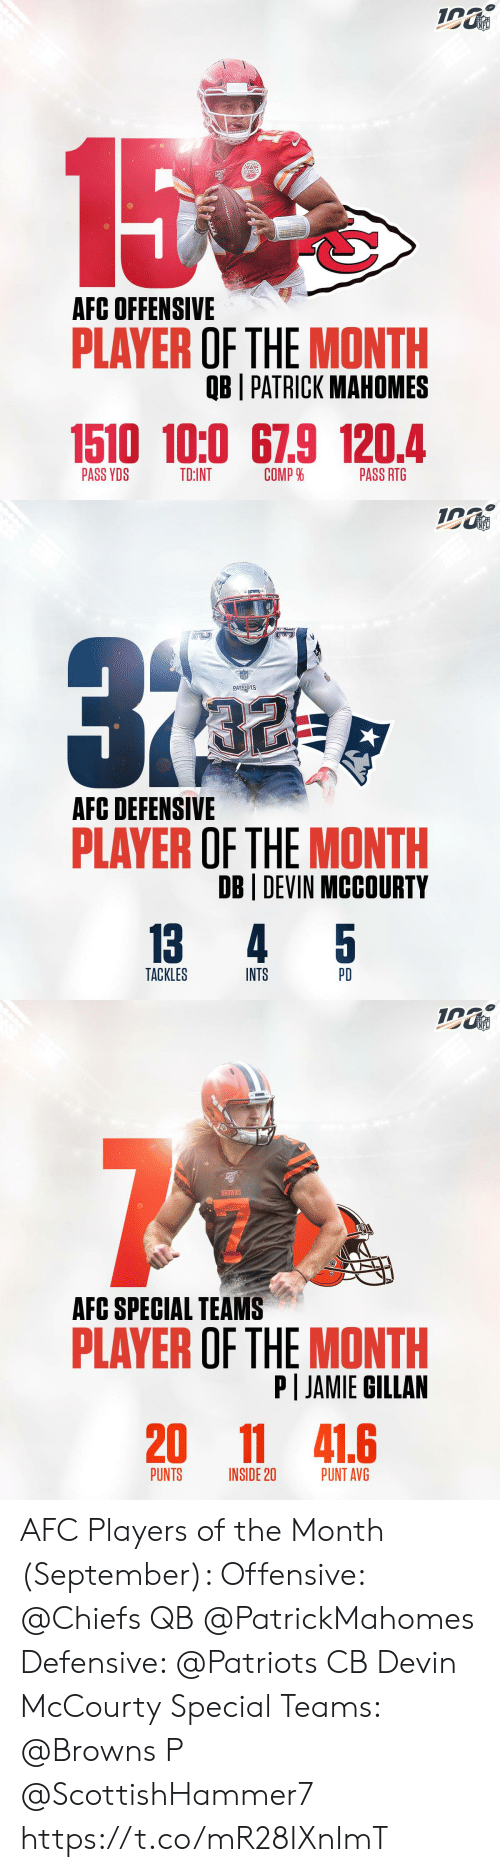 Defensive: NFL  15  AFC OFFENSIVE  PLAYER OF THE MONTH  OB I PATRICK MAHOMES  1510 10:0 67.9 120.4  COMP %  PASS YDS  TD:INT  PASS RTG   NFL  ATROTE  PATRIOTS  AFC DEFENSIVE  PLAYER OF THE MONTH  DB DEVIN MCCOURTY  5  13  4  TACKLES  INTS  PD   NFL  BROWNS  AFC SPECIAL TEAMS  PLAYER OF THE MONTH  P JAMIE GILLAN  20  11 41.6  PUNTS  PUNT AVG  INSIDE 20 AFC Players of the Month (September):   Offensive: @Chiefs QB @PatrickMahomes  Defensive: @Patriots CB Devin McCourty Special Teams: @Browns P @ScottishHammer7 https://t.co/mR28IXnImT